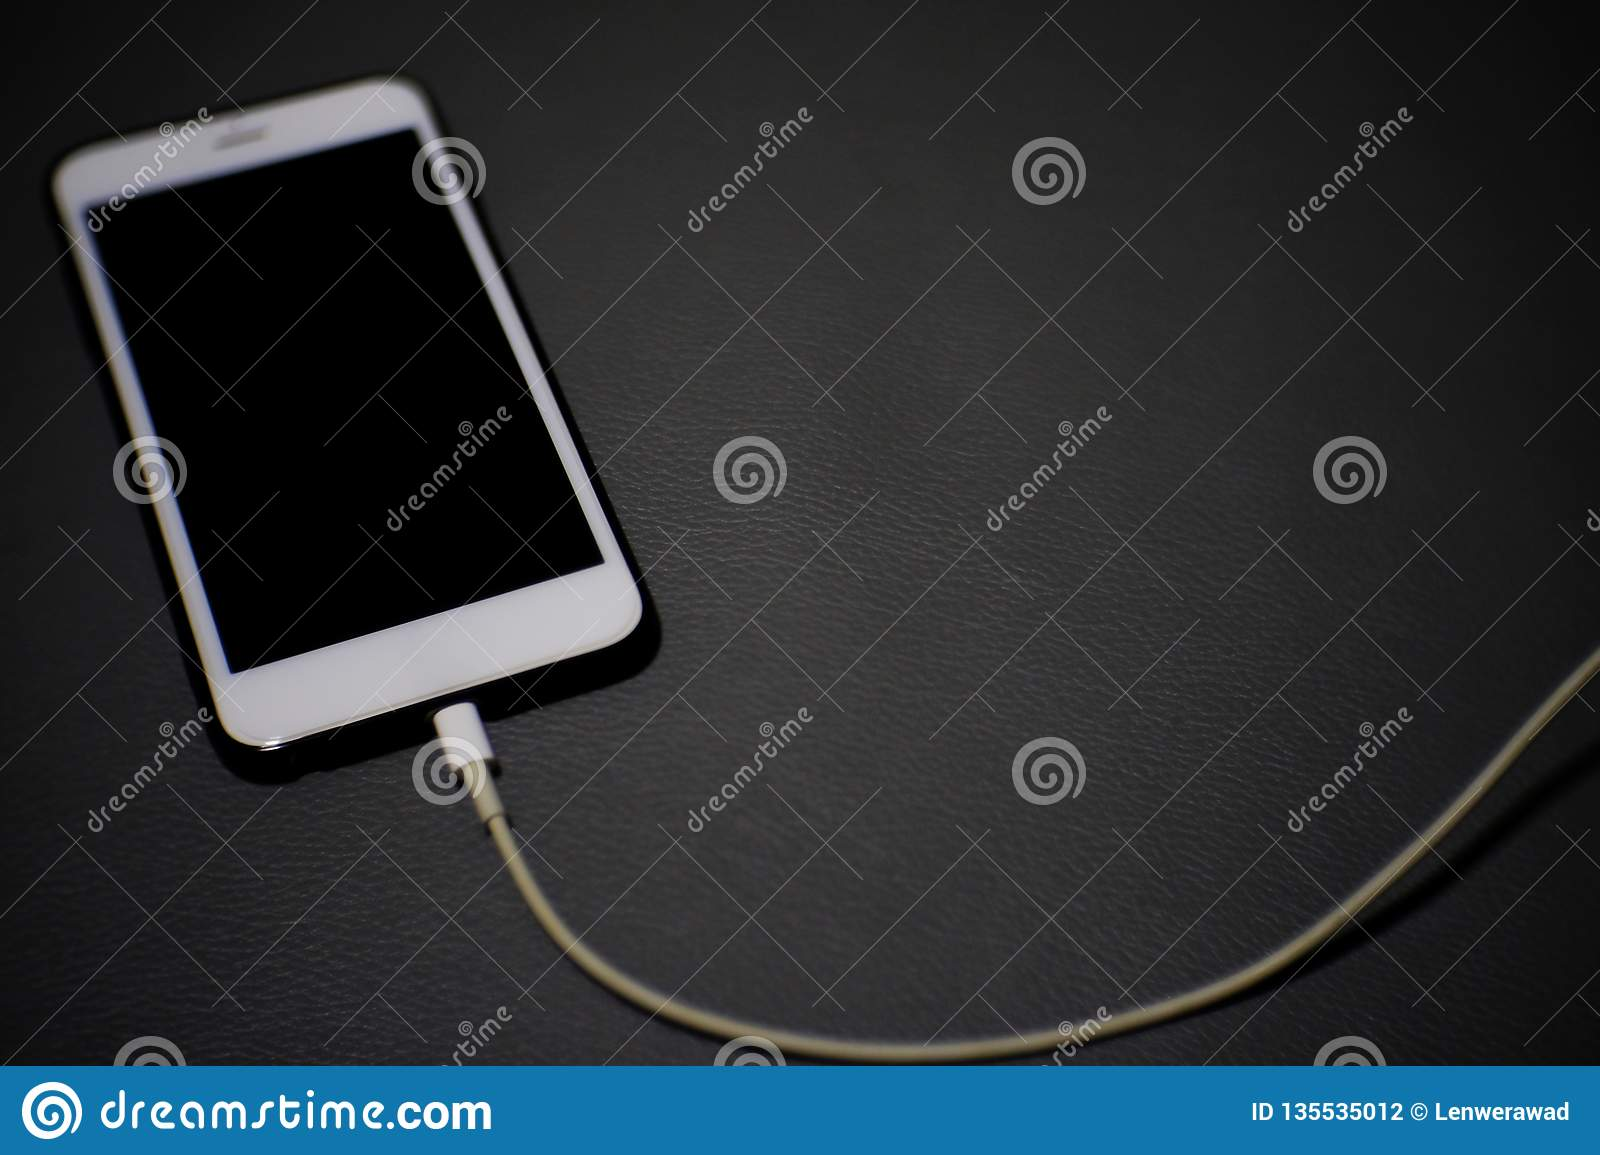 mobile smartphone is charging the battery on gray background.